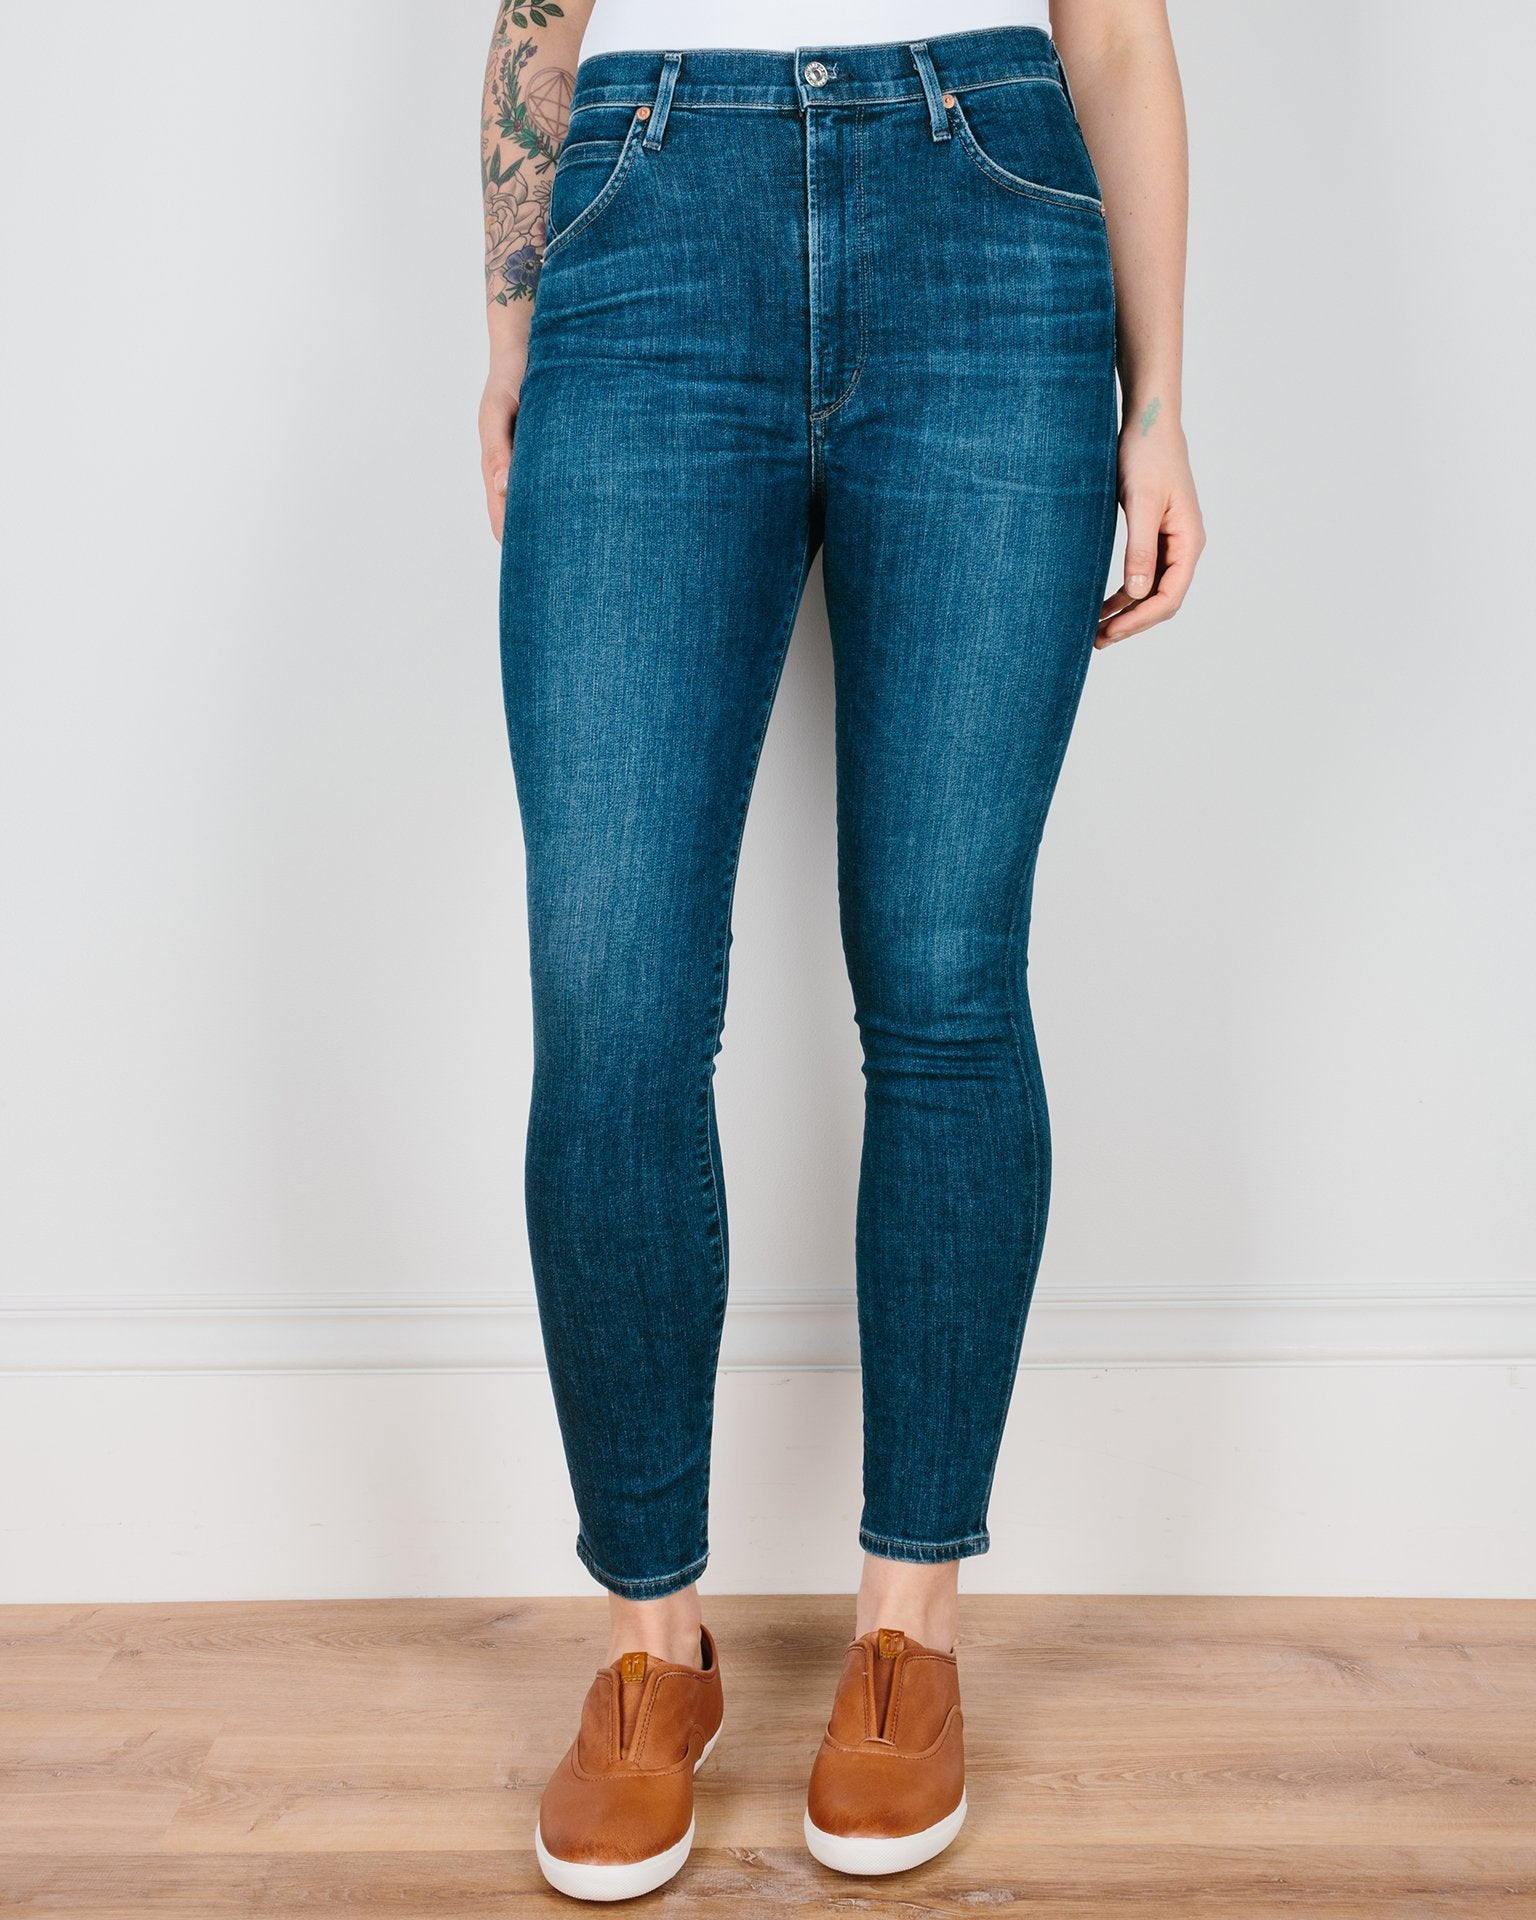 Citizen's of Humanity Denim Carmel / 25 Chrissy High Rise Skinny in Carmel